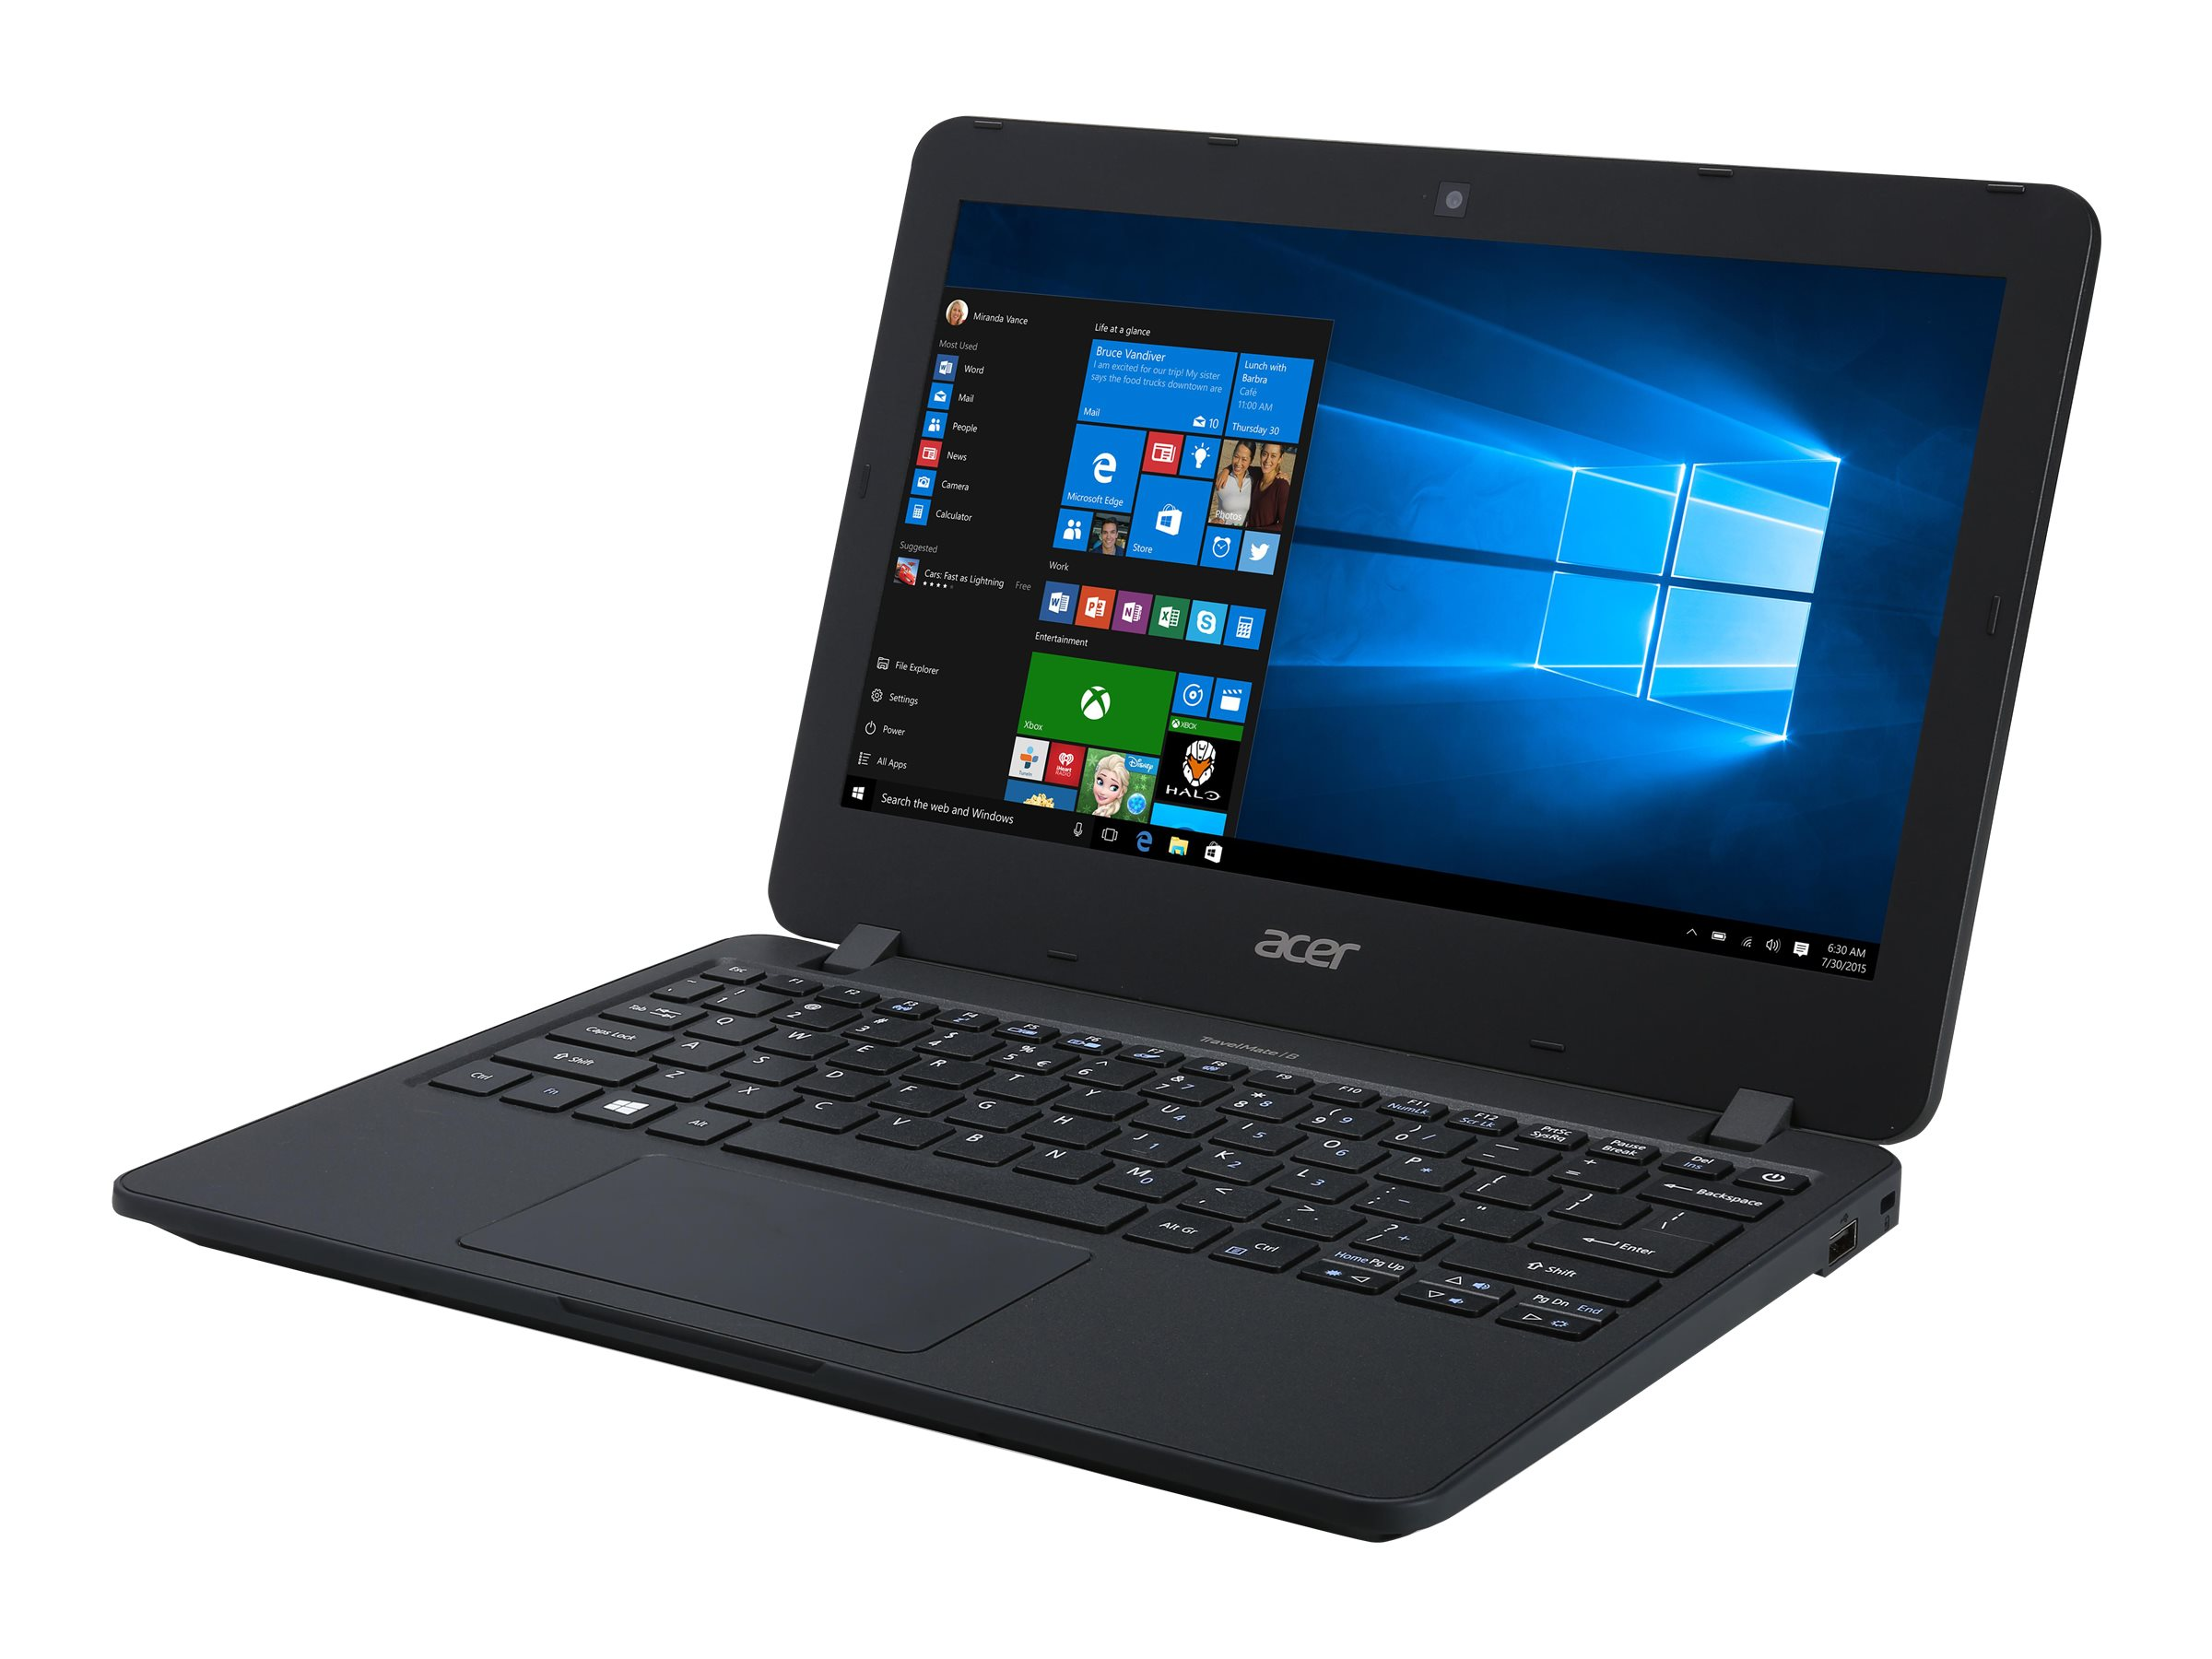 Acer TravelMate B117-M-C37N 1.6GHz Celeron 11.6in display, NX.VCGAA.006